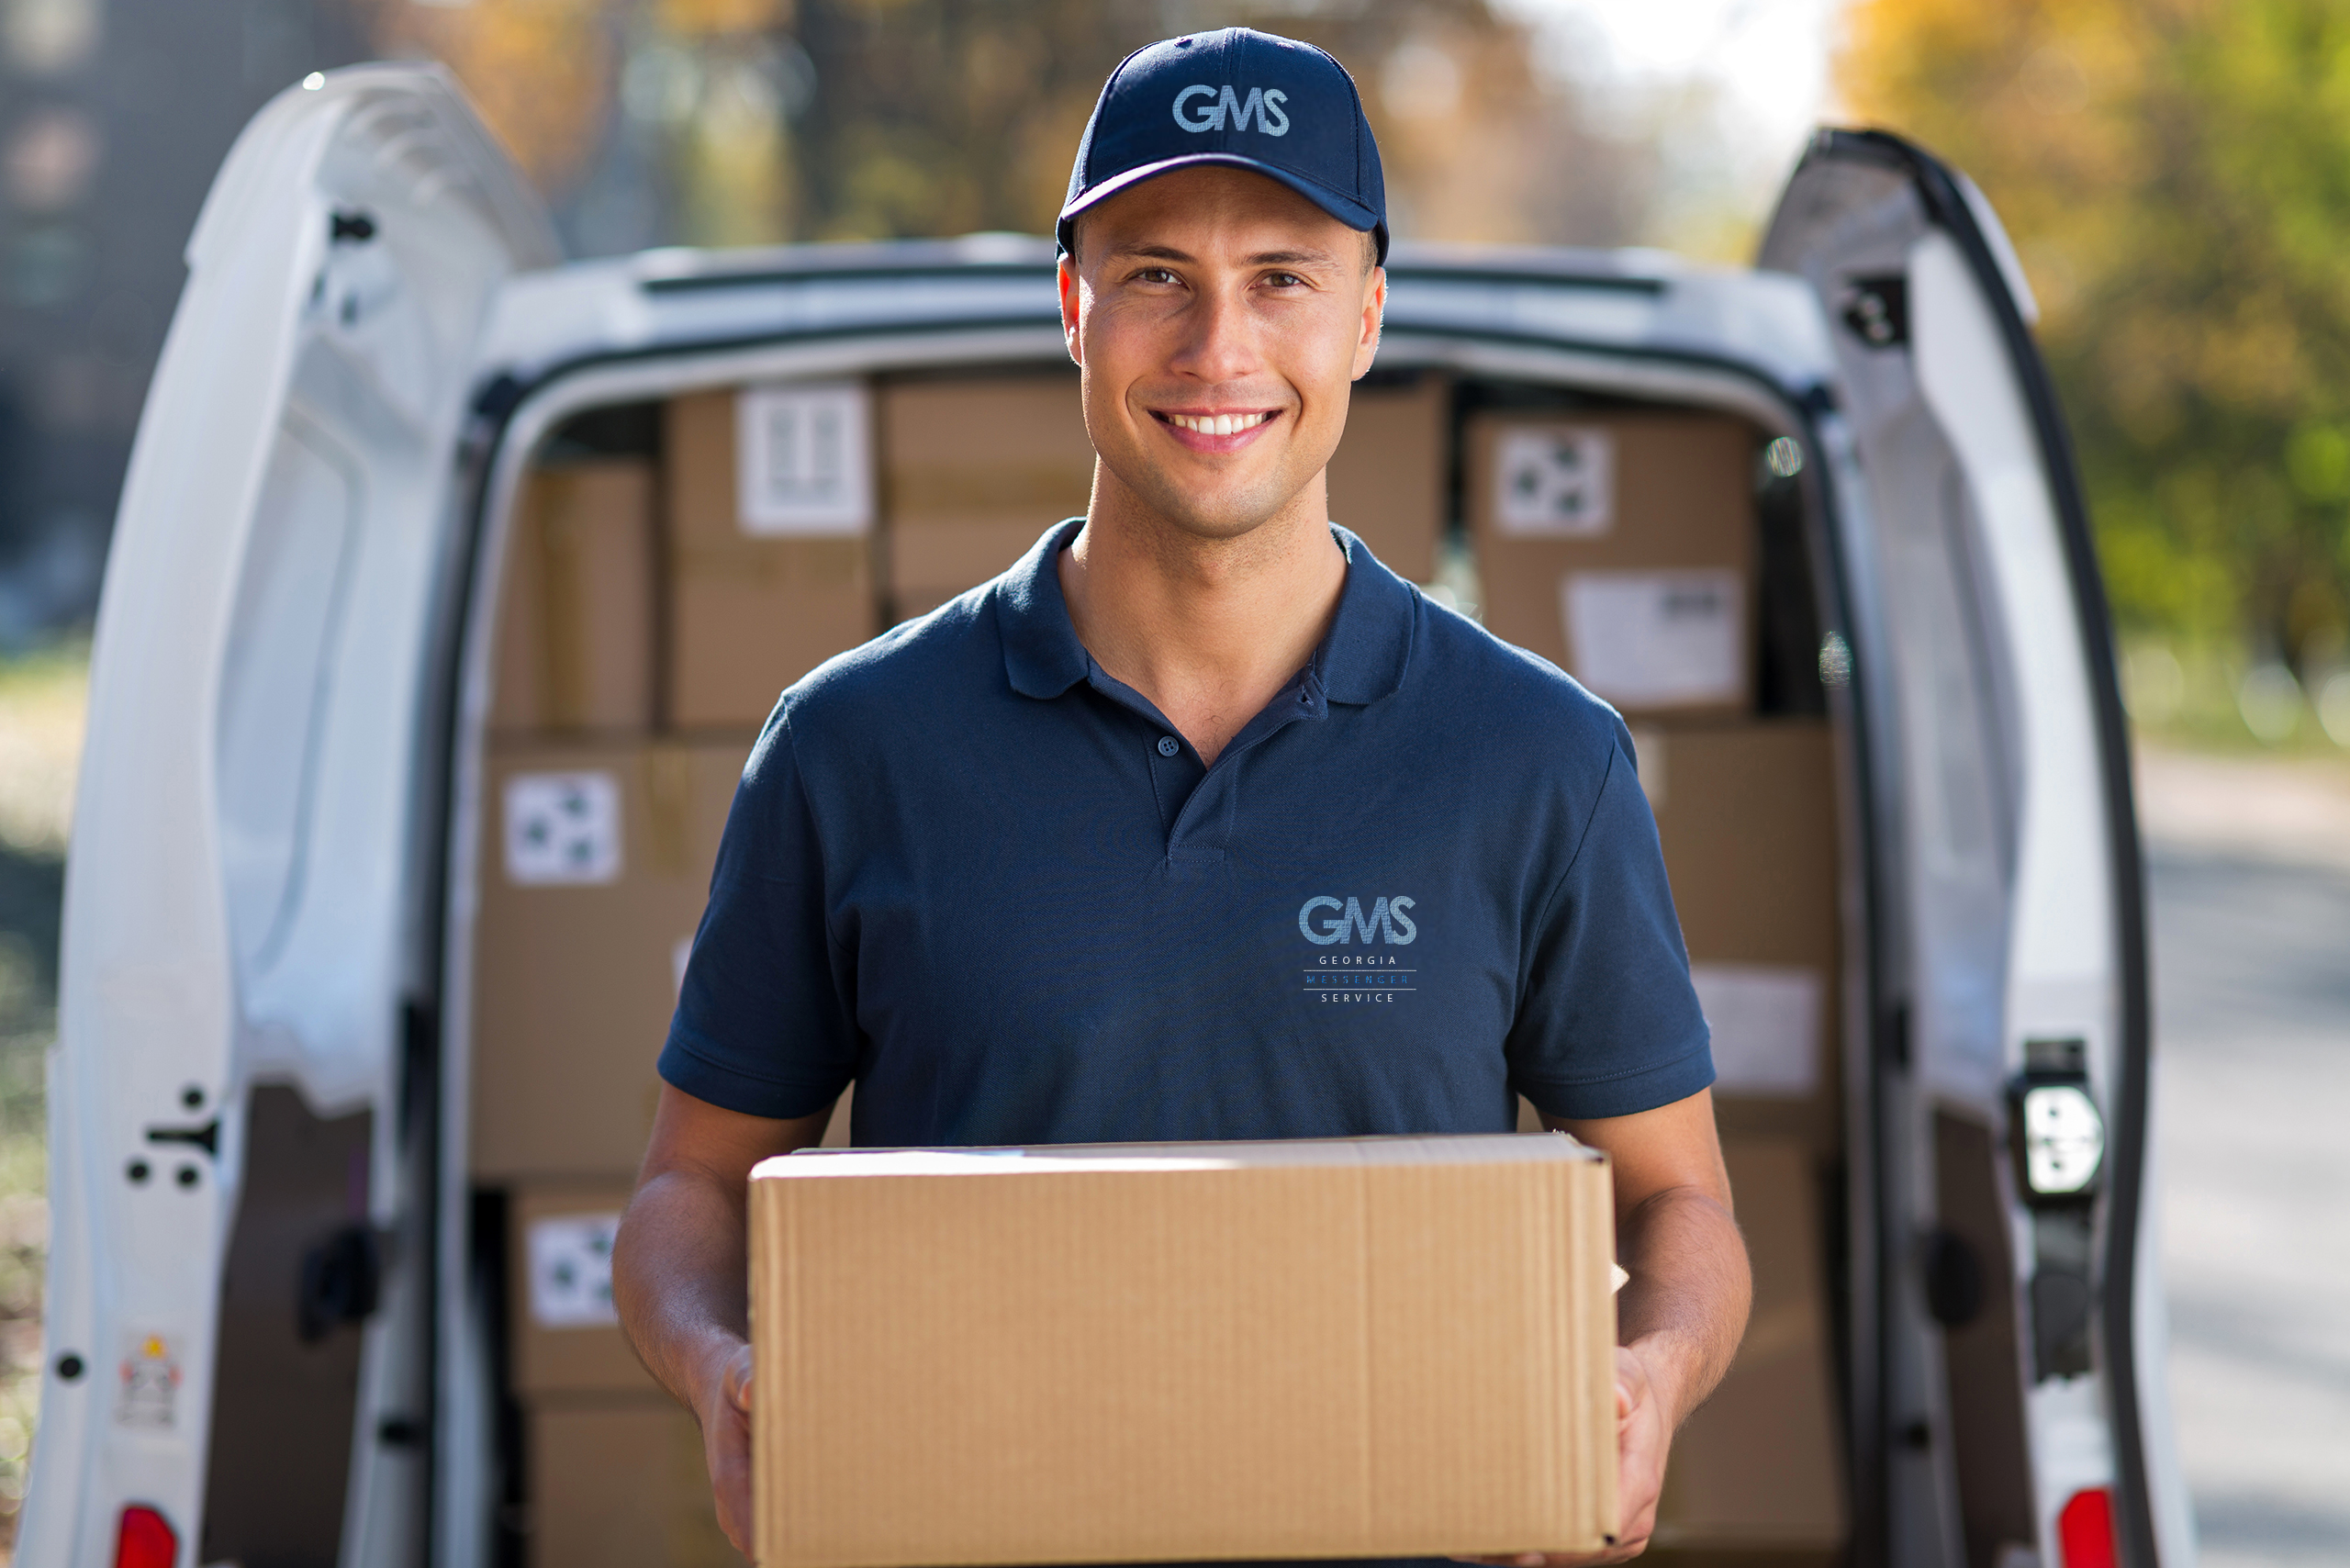 Delivery Driver with box